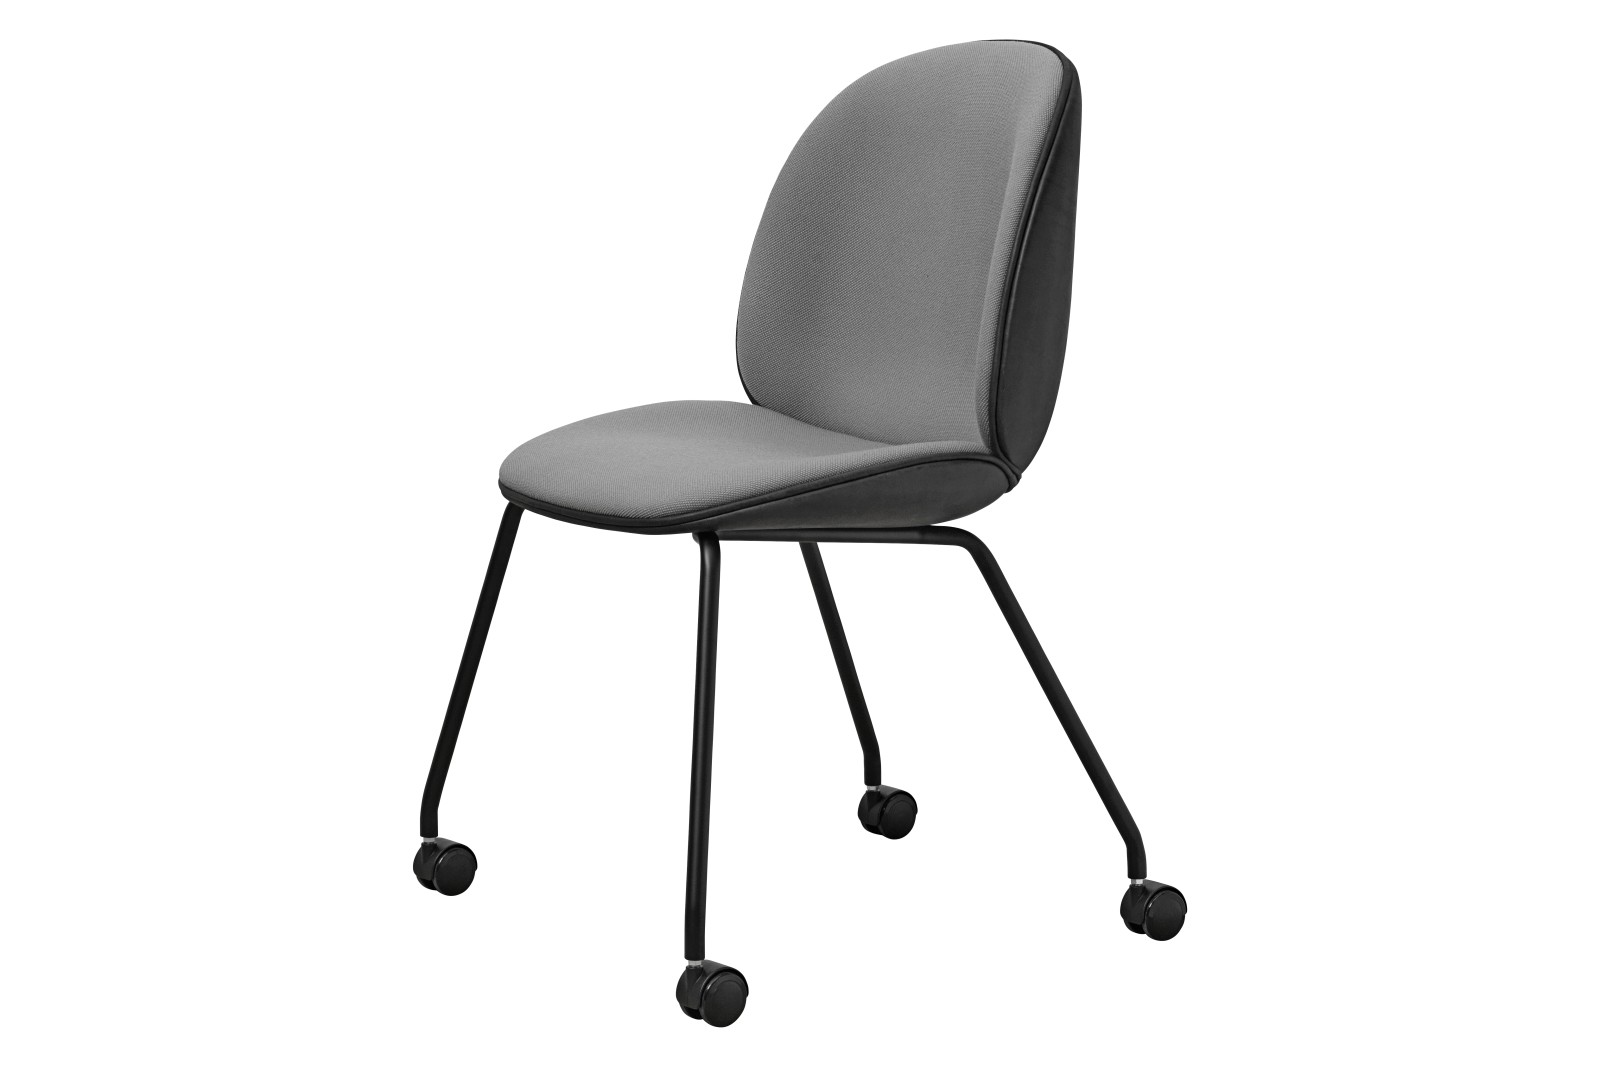 Beetle Meeting Chair - Front Upholstered, 4 Legs with Castors Price Grp. 01, Gubi Plastic Black